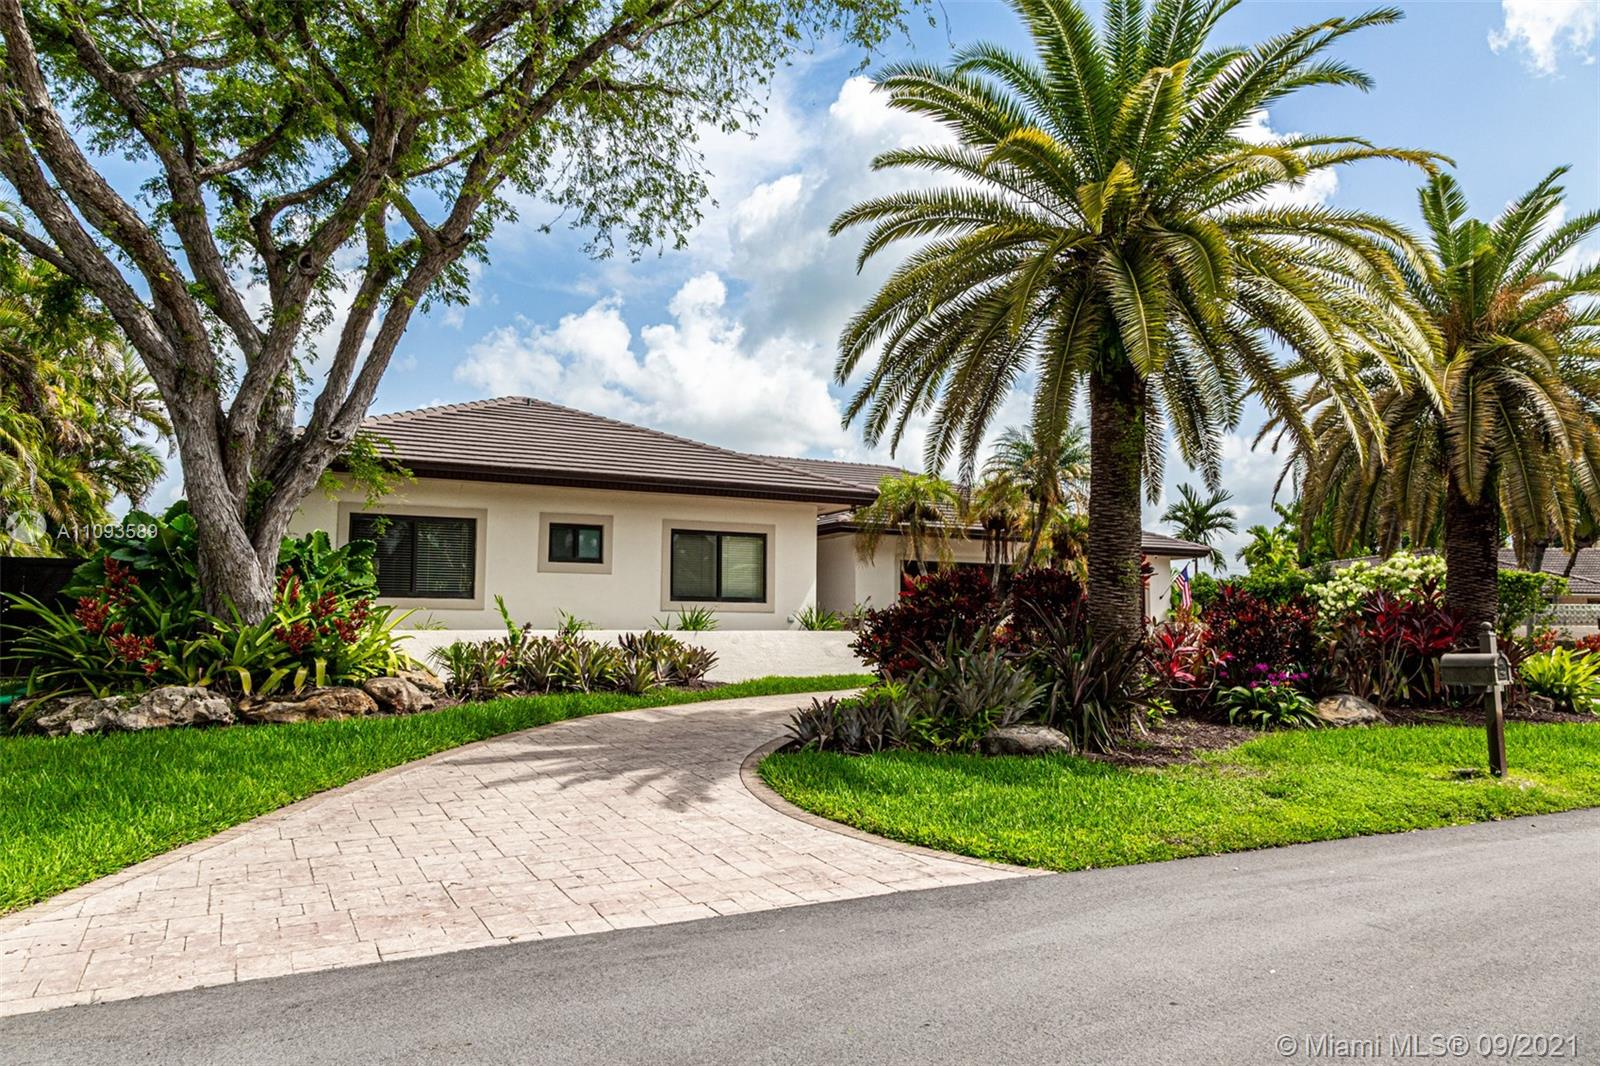 Enjoy this stunning home on a quiet cul-de-sac in Palmetto Bay!. Brand new tile roof and impact windows. Beautiful high ceiling, 5 large bedrooms, and 4 bathrooms, one of them with access to the pool area. This house offers the ideal layout, formal dinner, comfortable living areas, open kitchen, oversize master bedroom surrounded by a view of the pool. Great screened pool area with lush landscaping and a salt/water pool. New and upgraded electrical panel. 2 car garage.